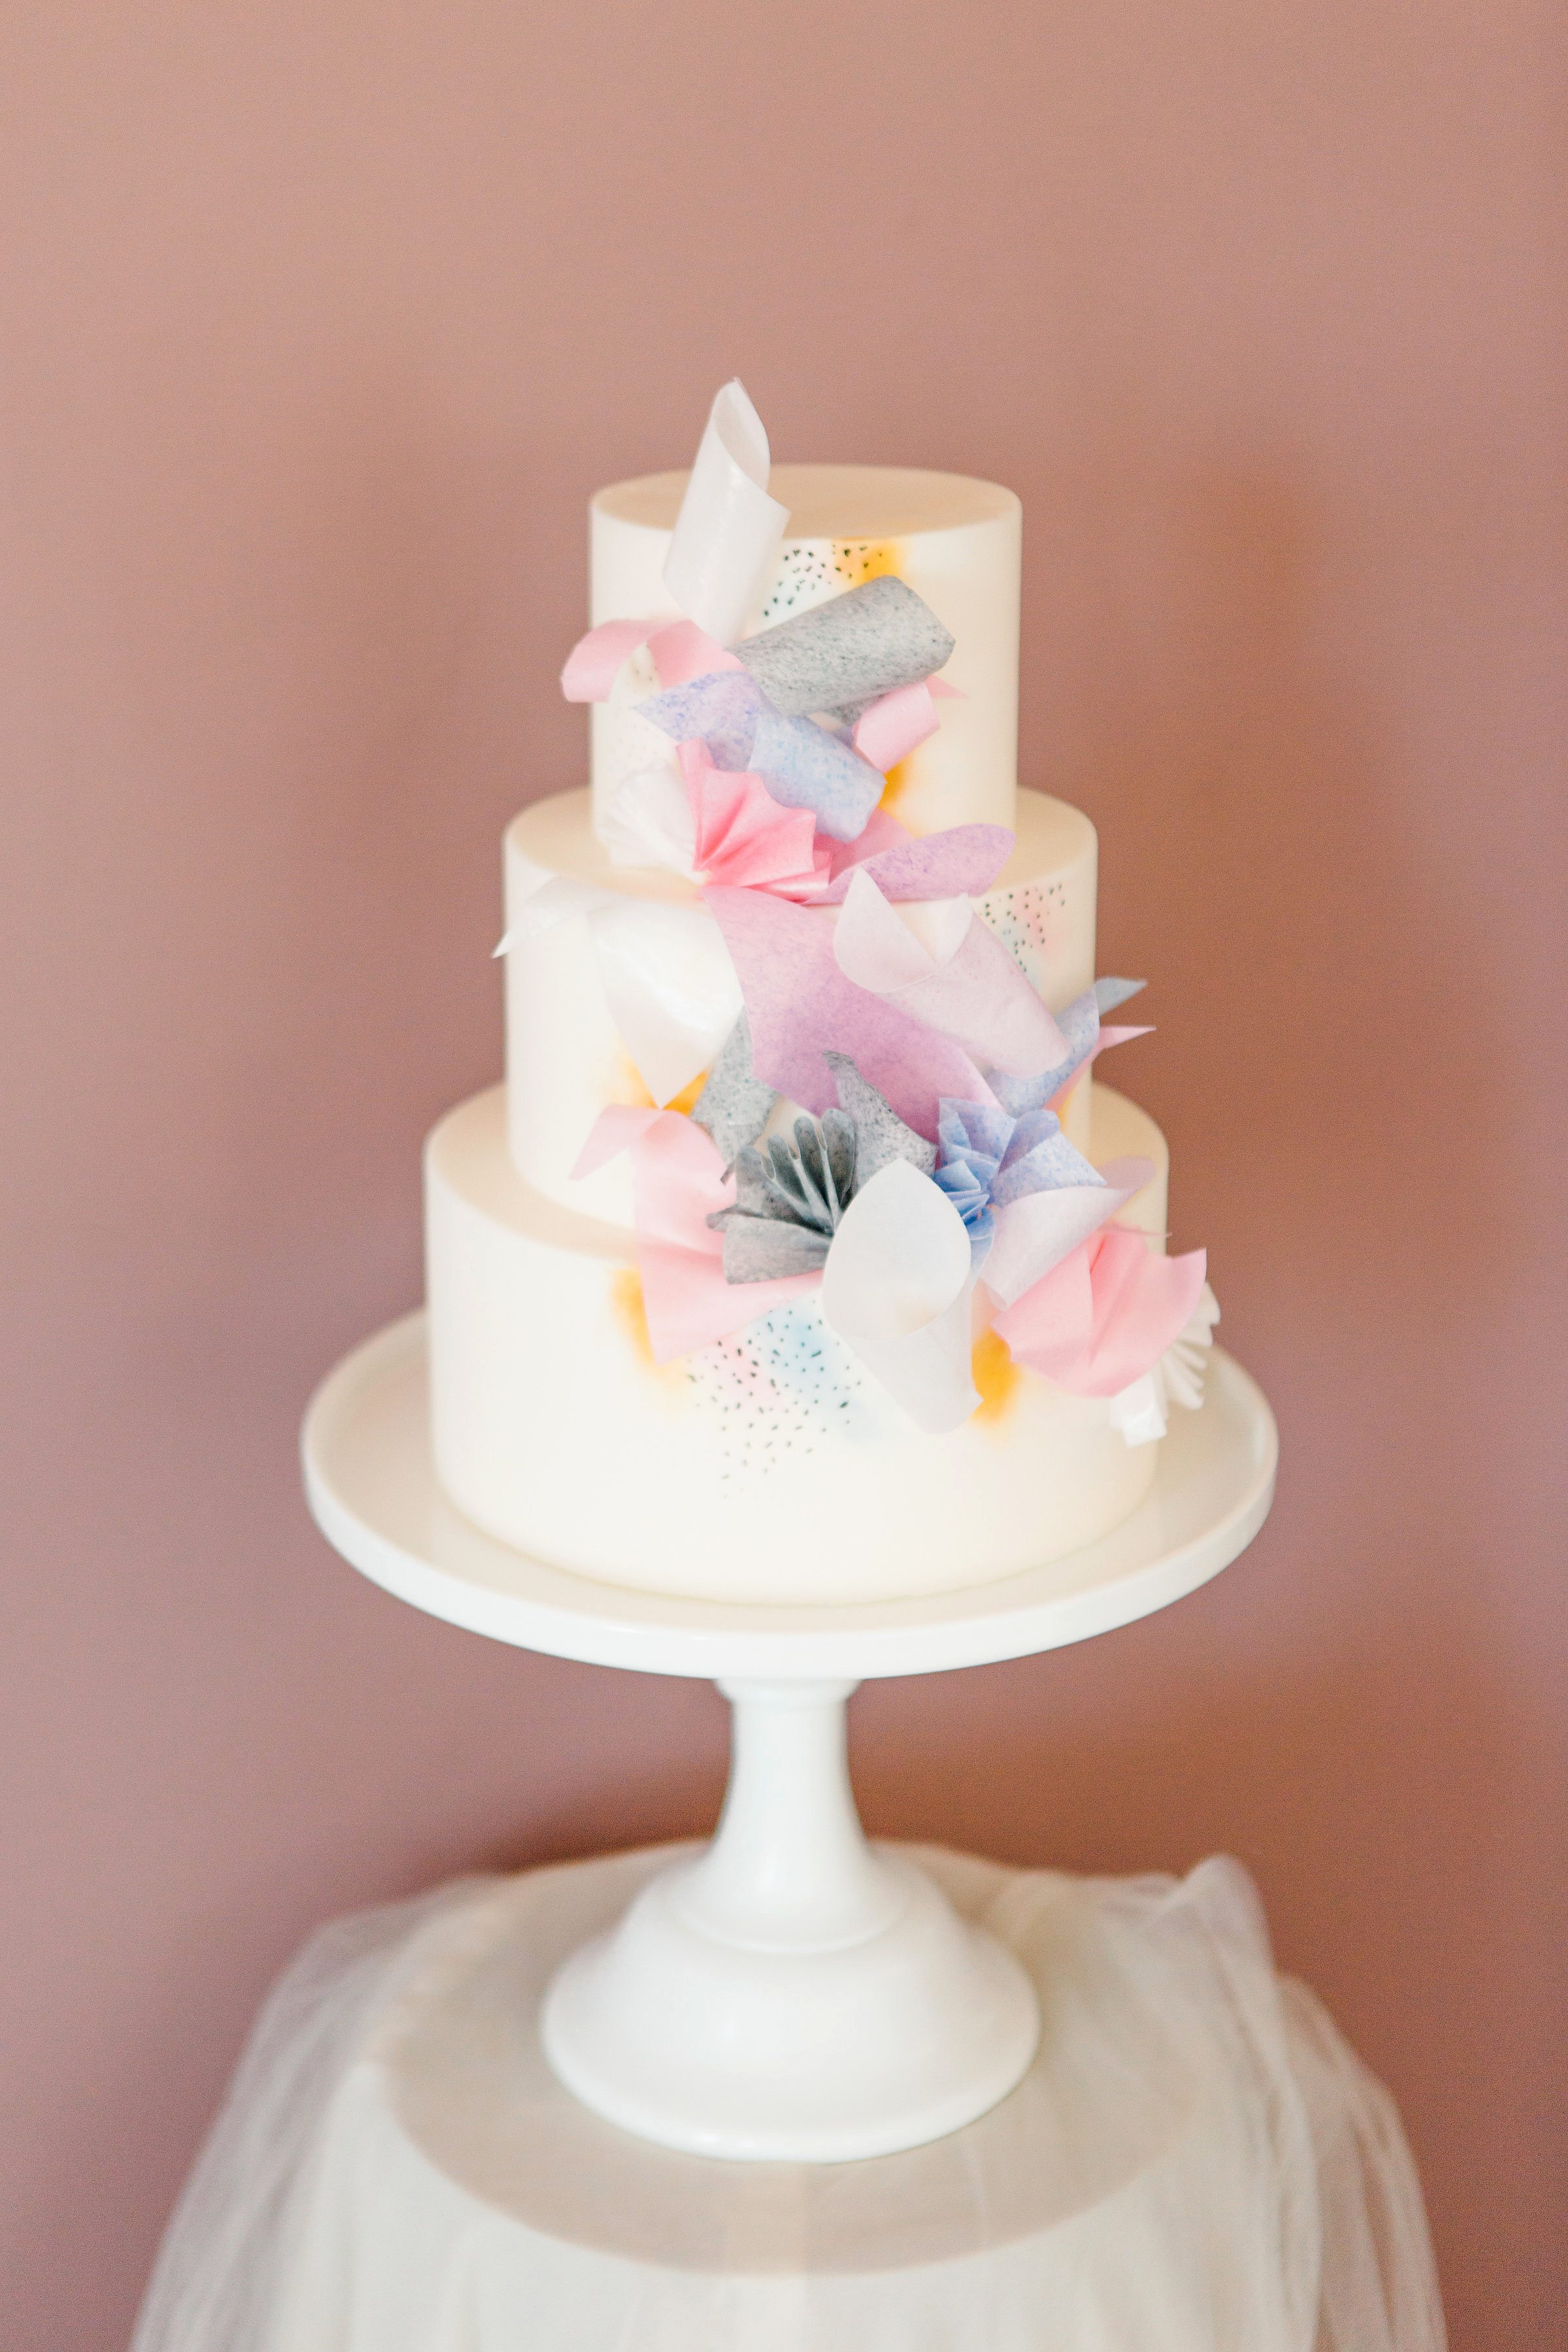 3-tier white cake decorated with pastel paper pieces